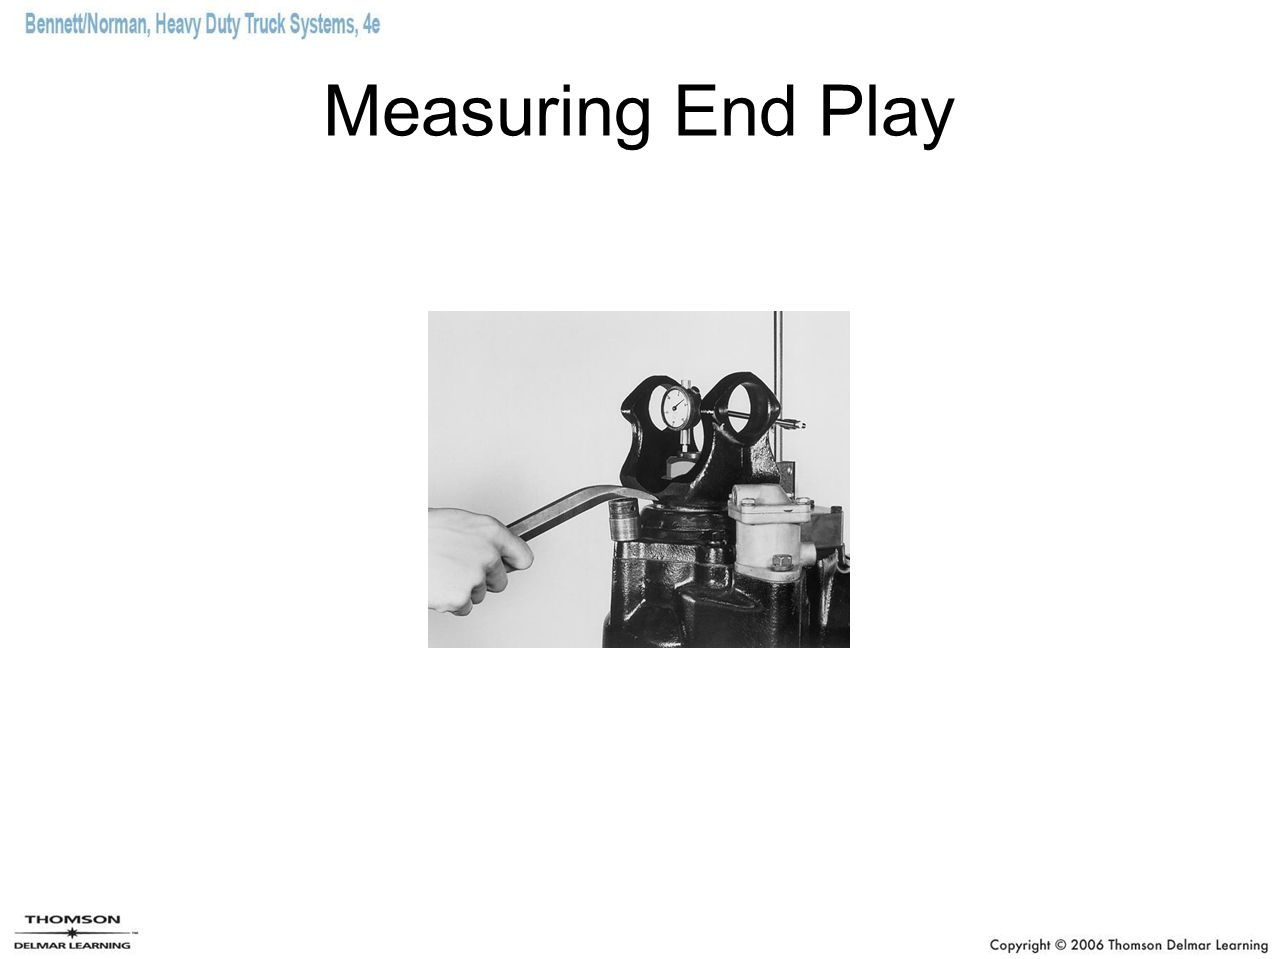 Measuring End Play